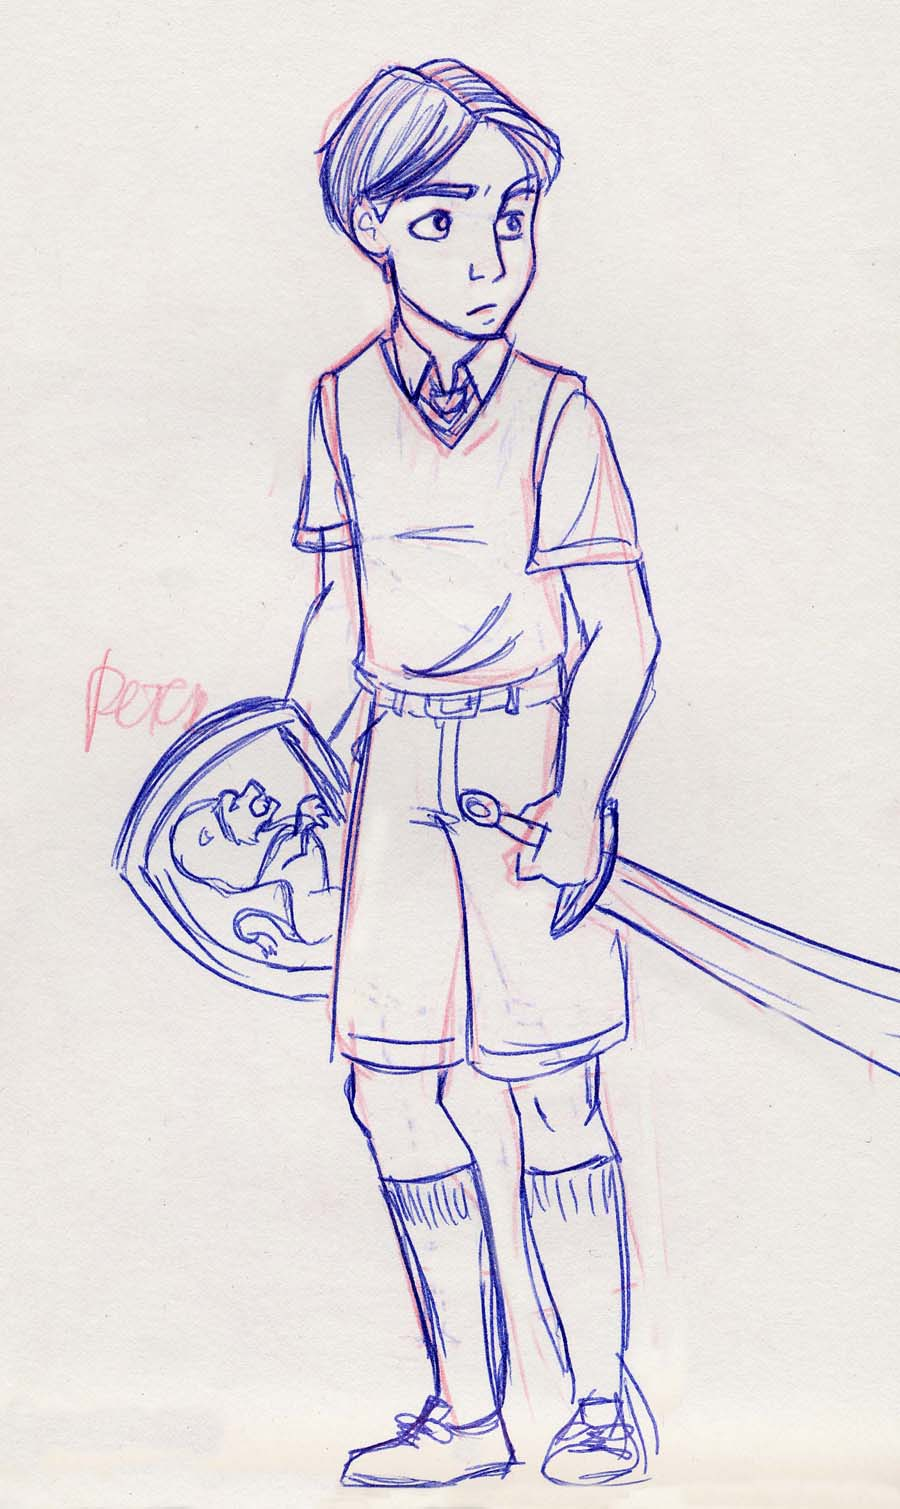 Peter Pevensie from The Chronicles of Narnia